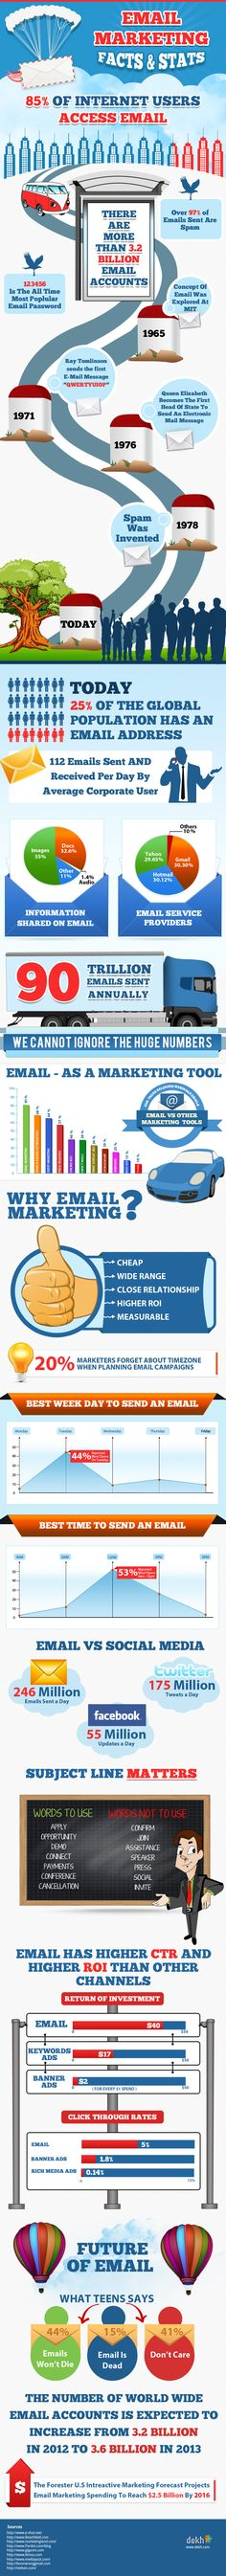 Email Marketing Facts: 2013 And Beyond - 112 emails are sent and received per day by average corporate user. Can't ignore the Email Marketing! Email Marketing Strategy, E-mail Marketing, Marketing Communications, Mobile Marketing, Content Marketing, Internet Marketing, Marketing And Advertising, Online Marketing, Social Media Marketing